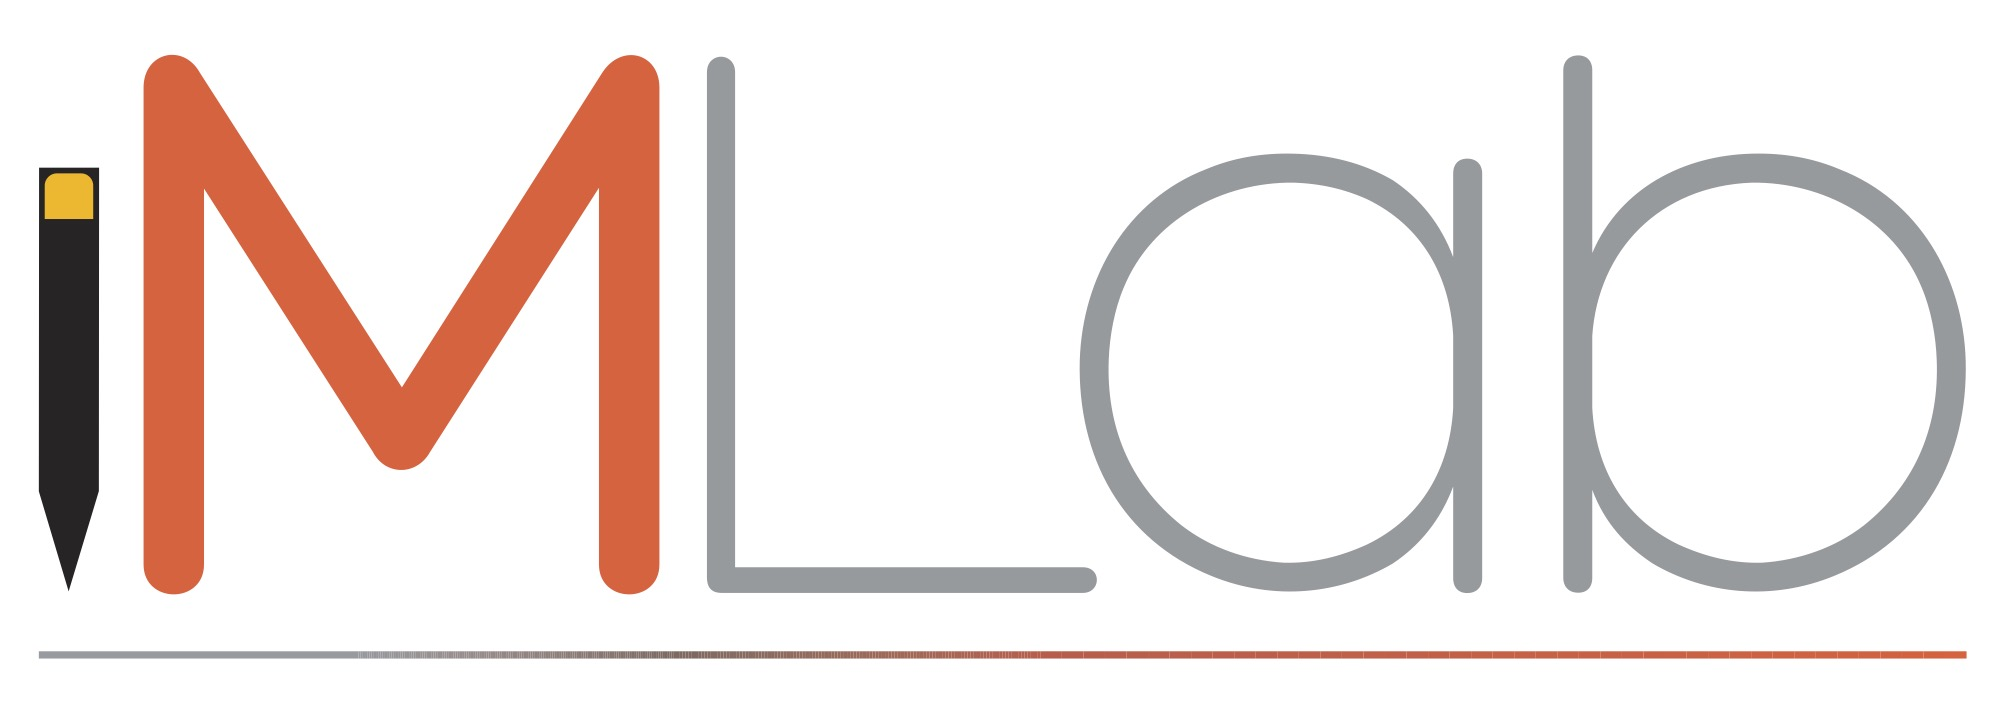 """MLab, the Color and Materials Lab Affiliated with PENSOLE Academy, to Partner with swatchbook for Upcoming """"Designing with Sole"""" Program"""